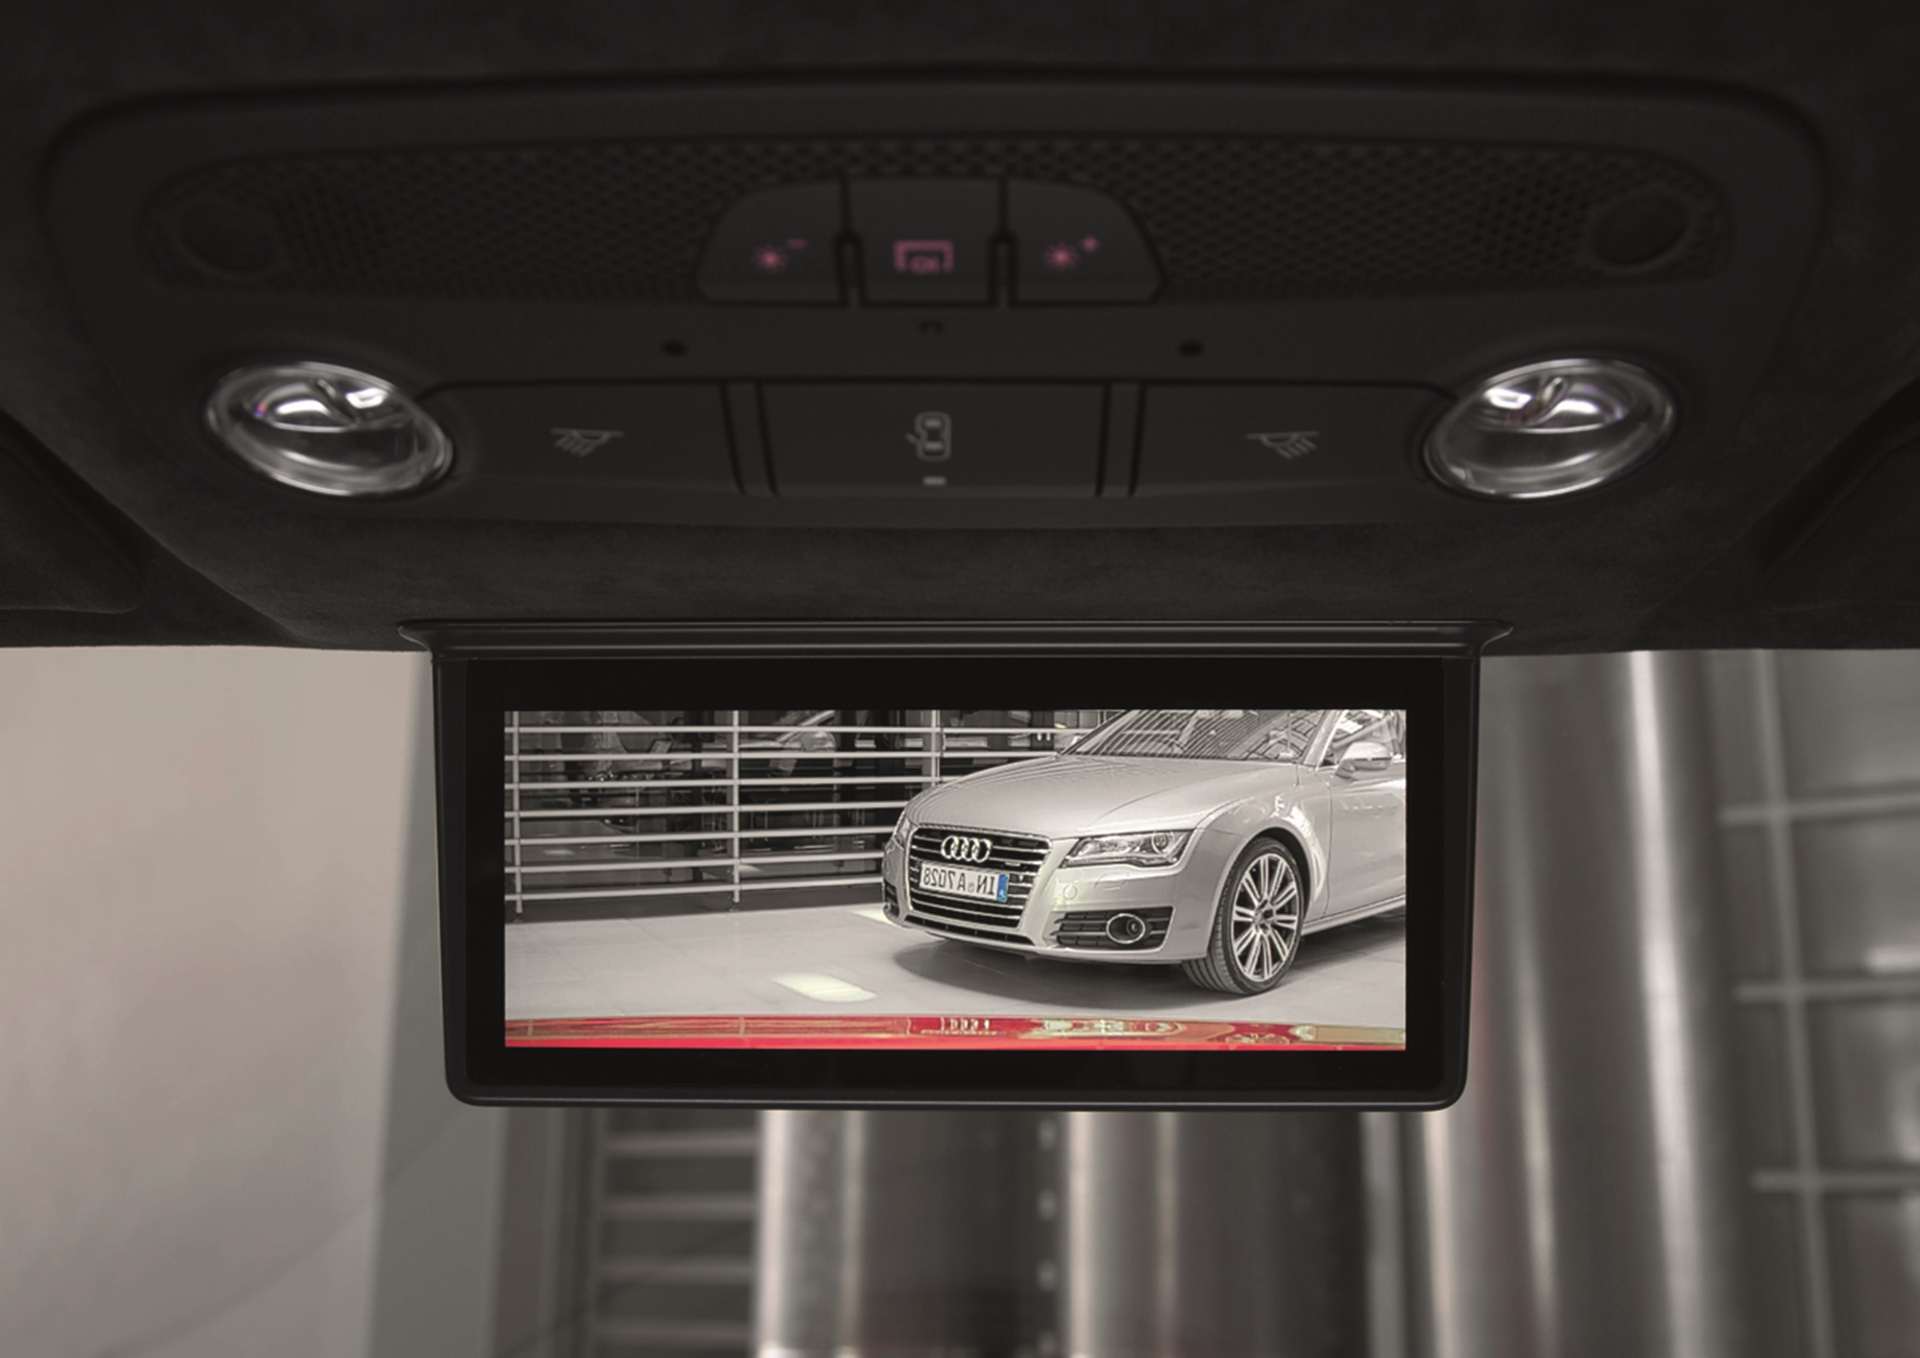 Audi digital rear-view mirror